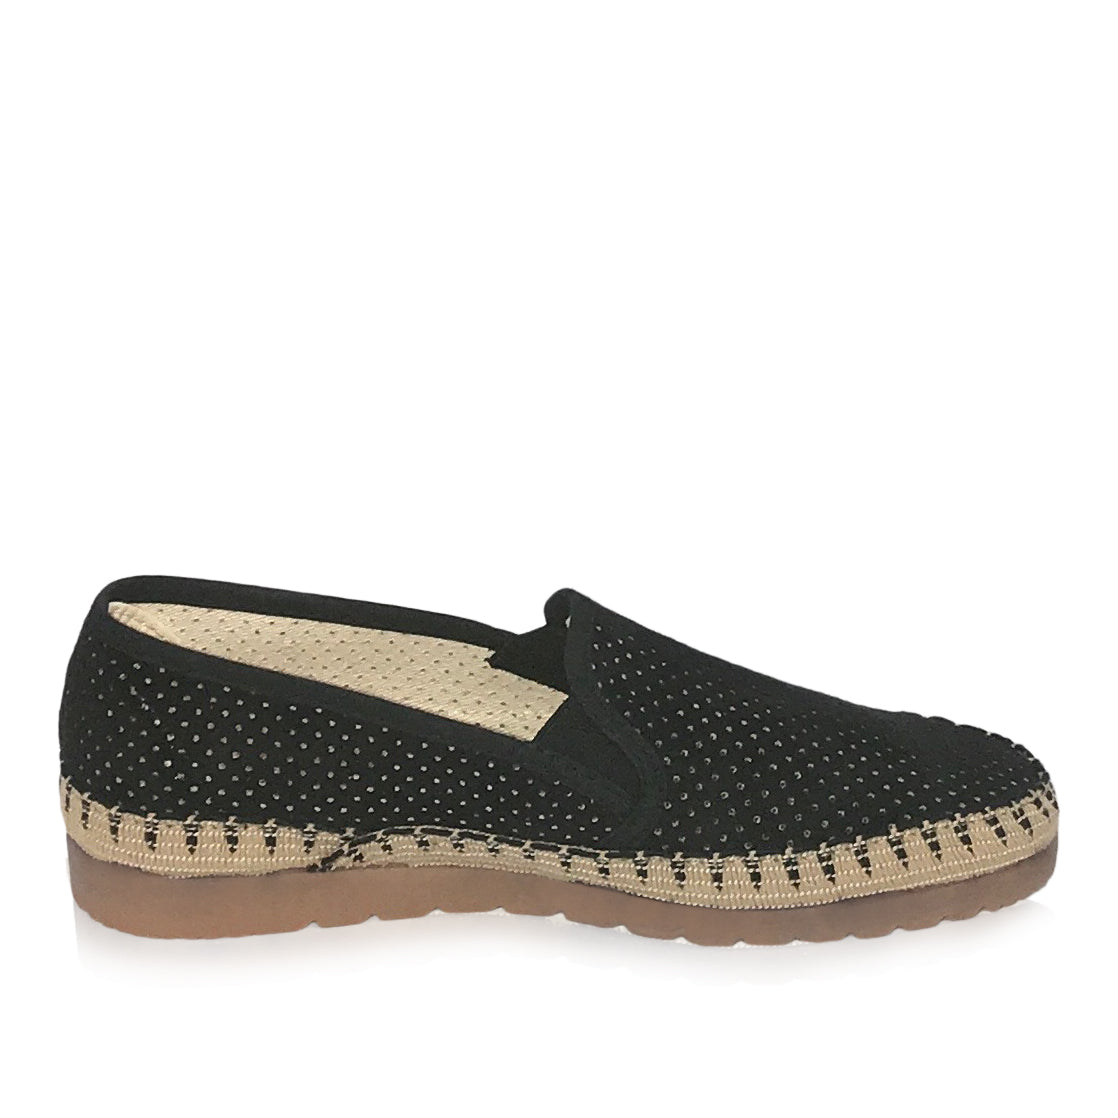 Verbenas by Neo Spain - Black Suede Espadrille